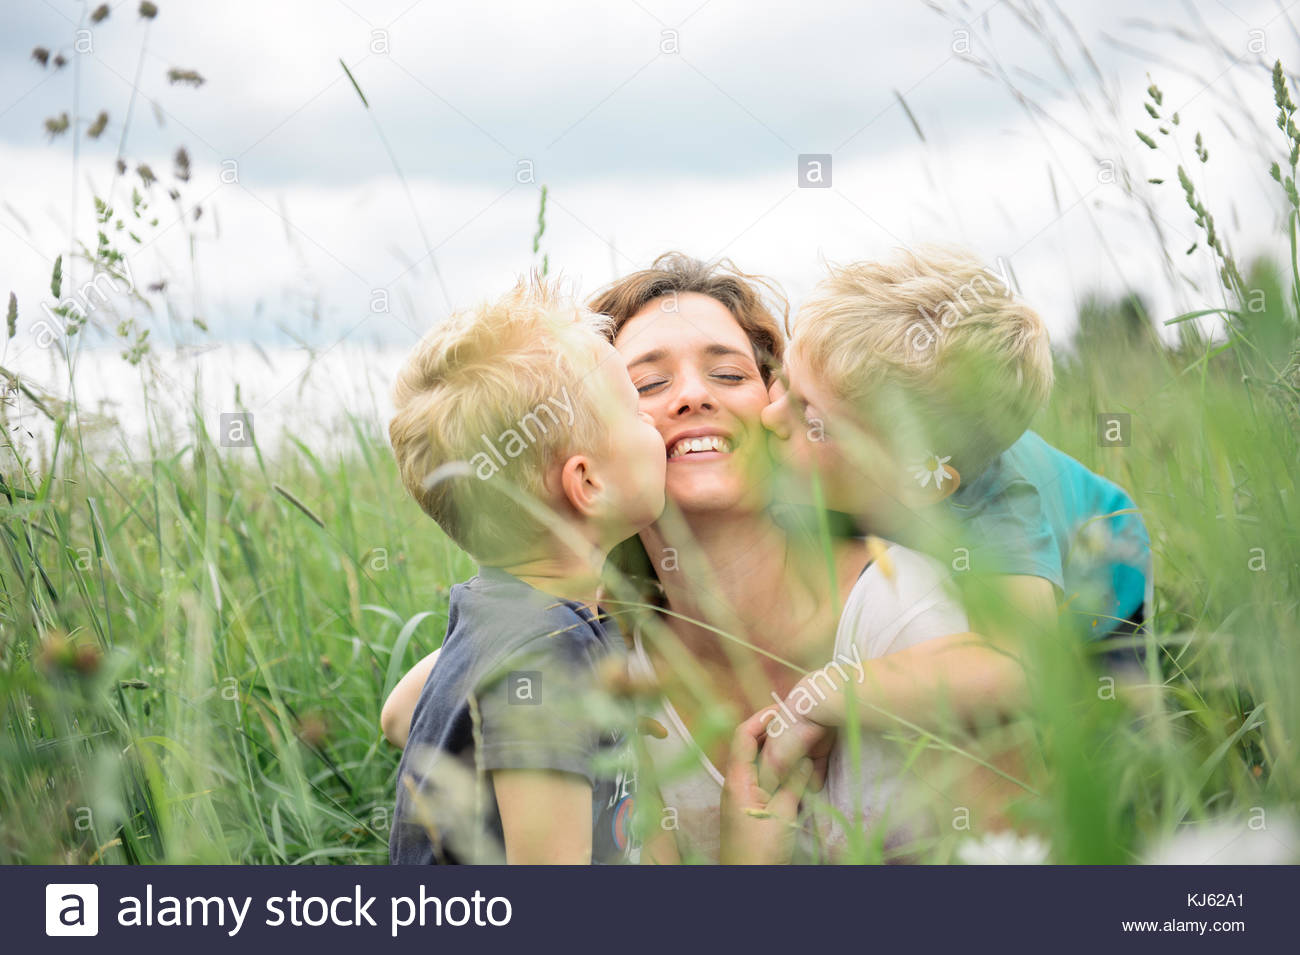 Kids kissing their mother in a meadow - Stock Image